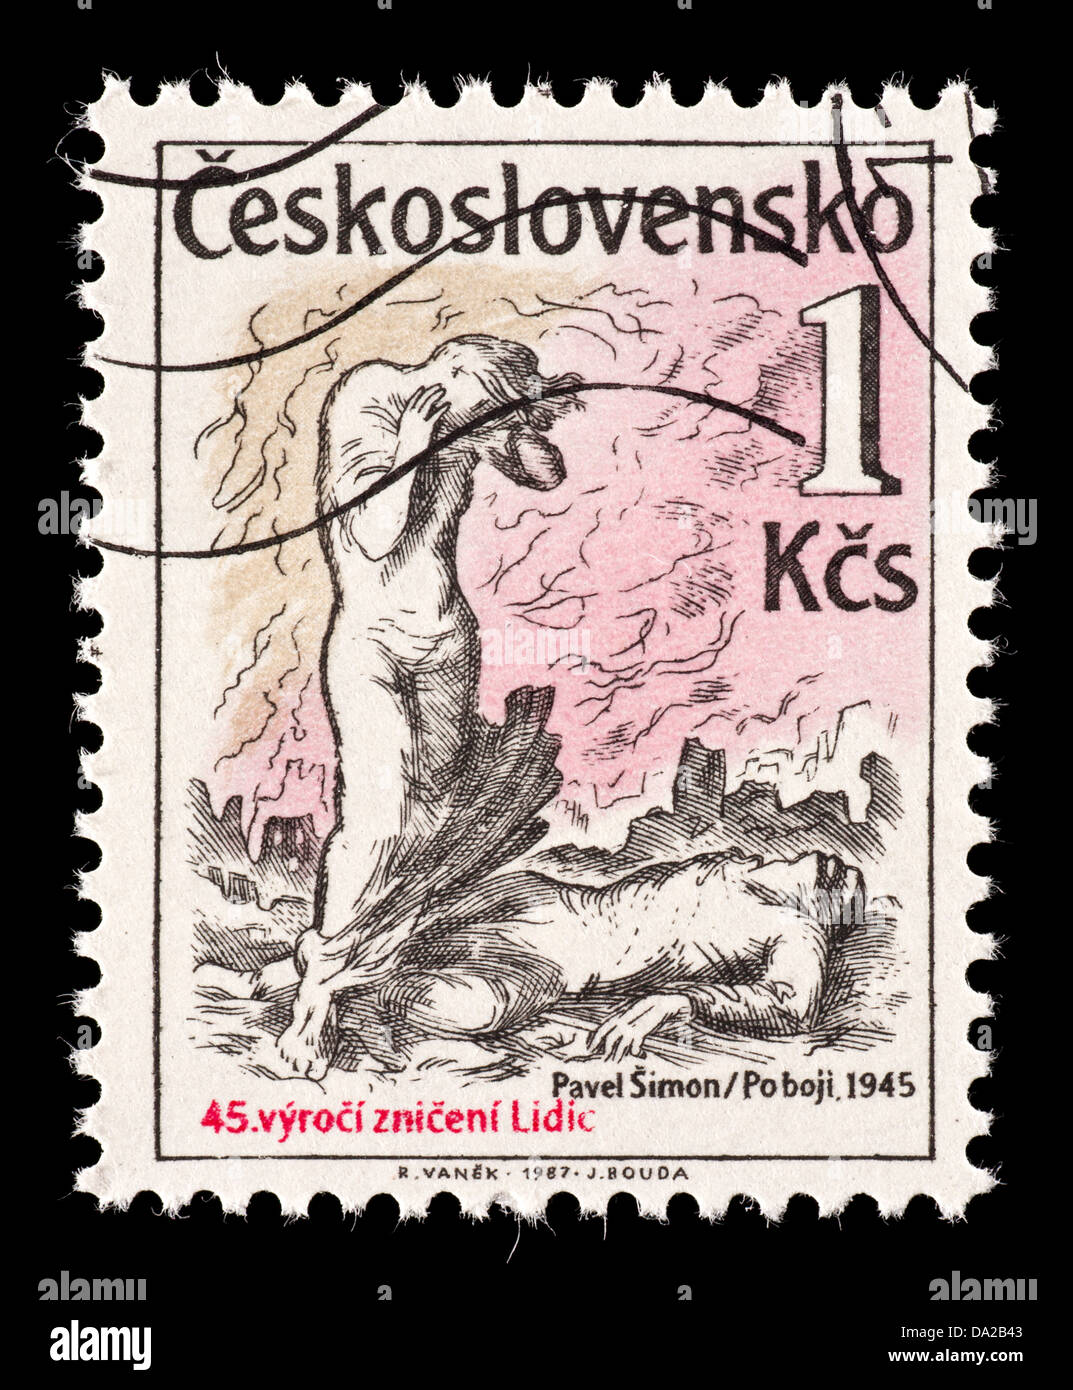 Postage stamp from Czechoslovakia depicting the destruction of Lidice and Lezaky (45'th anniversary). site of Nazi Stock Photo